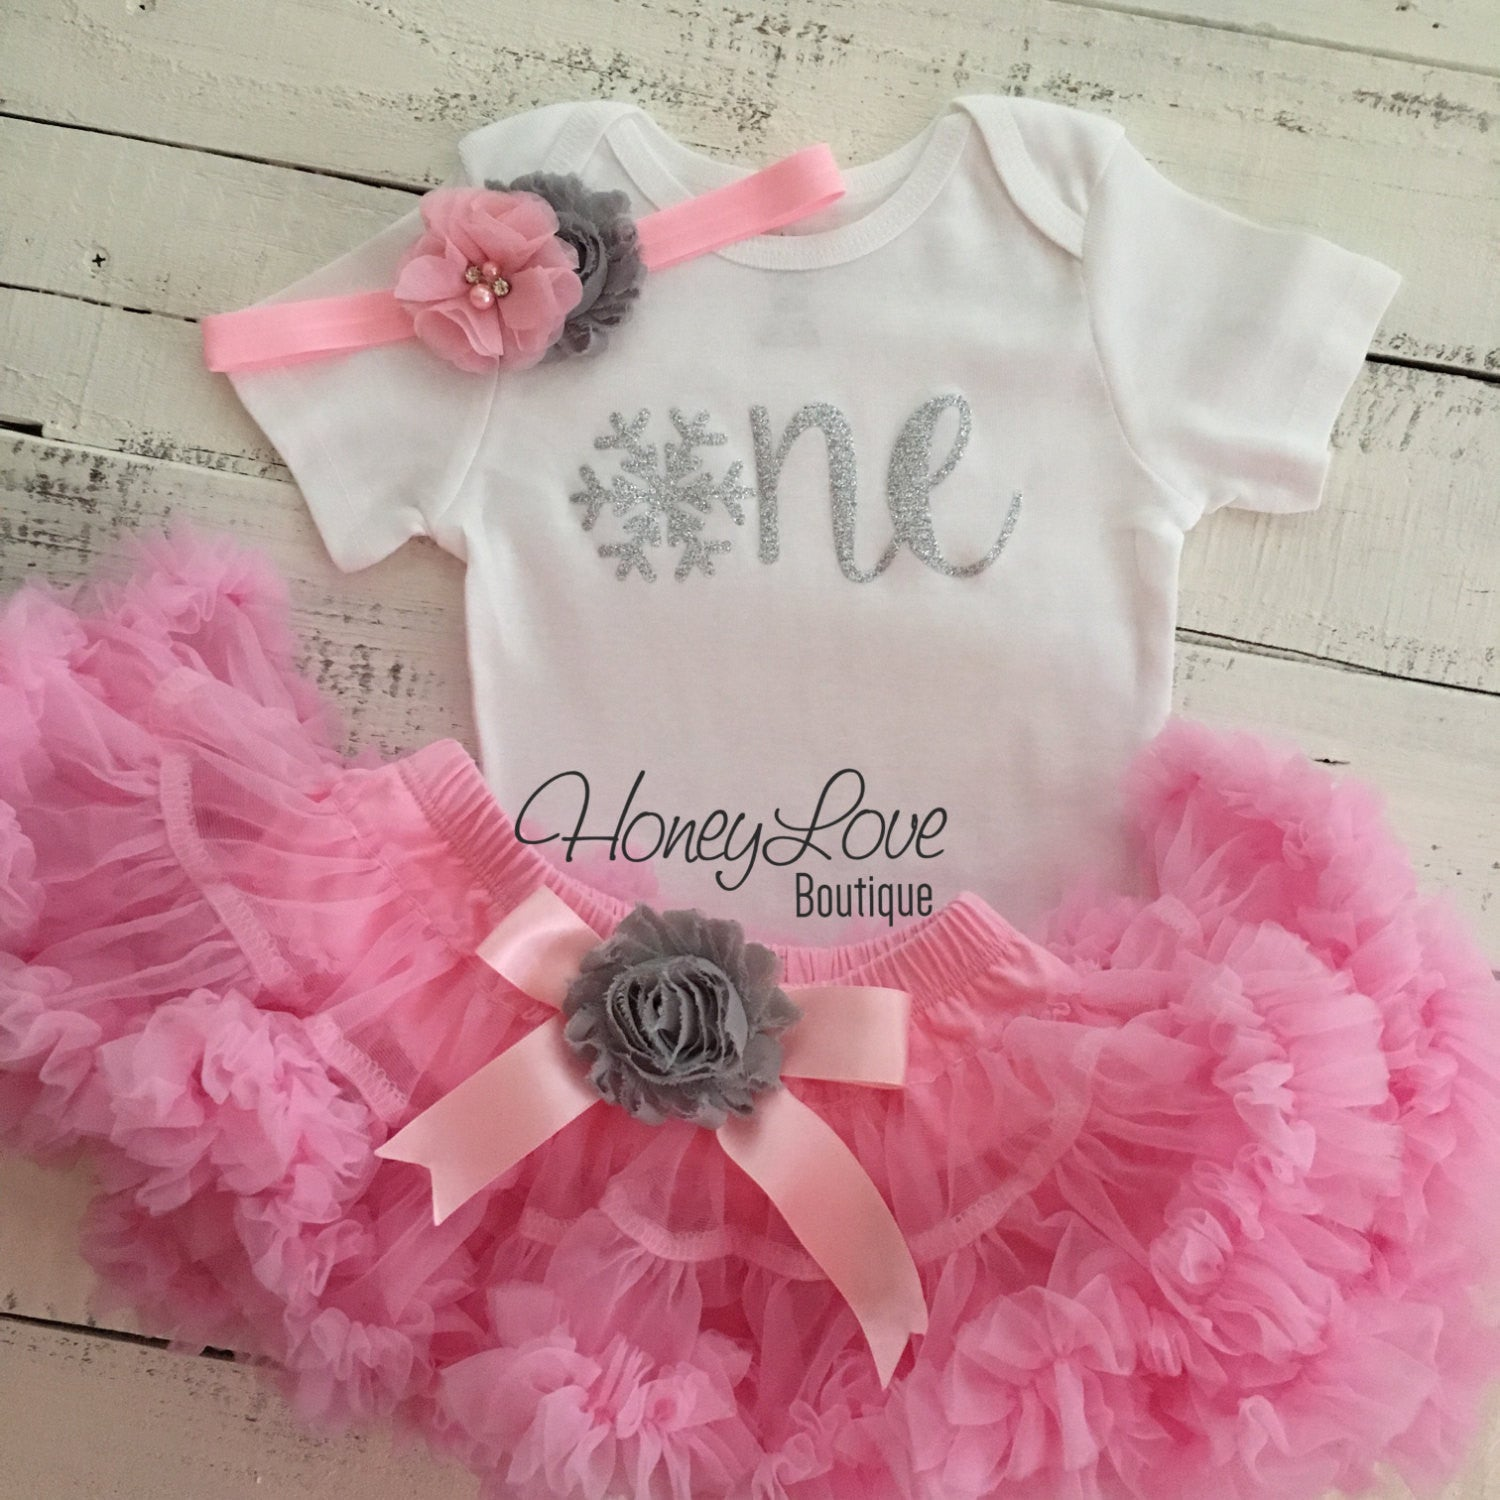 a09846cb6 ... Winter ONEderland 1st Birthday outfit - Light Pink, Gray and Silver  glitter - HoneyLoveBoutique ...